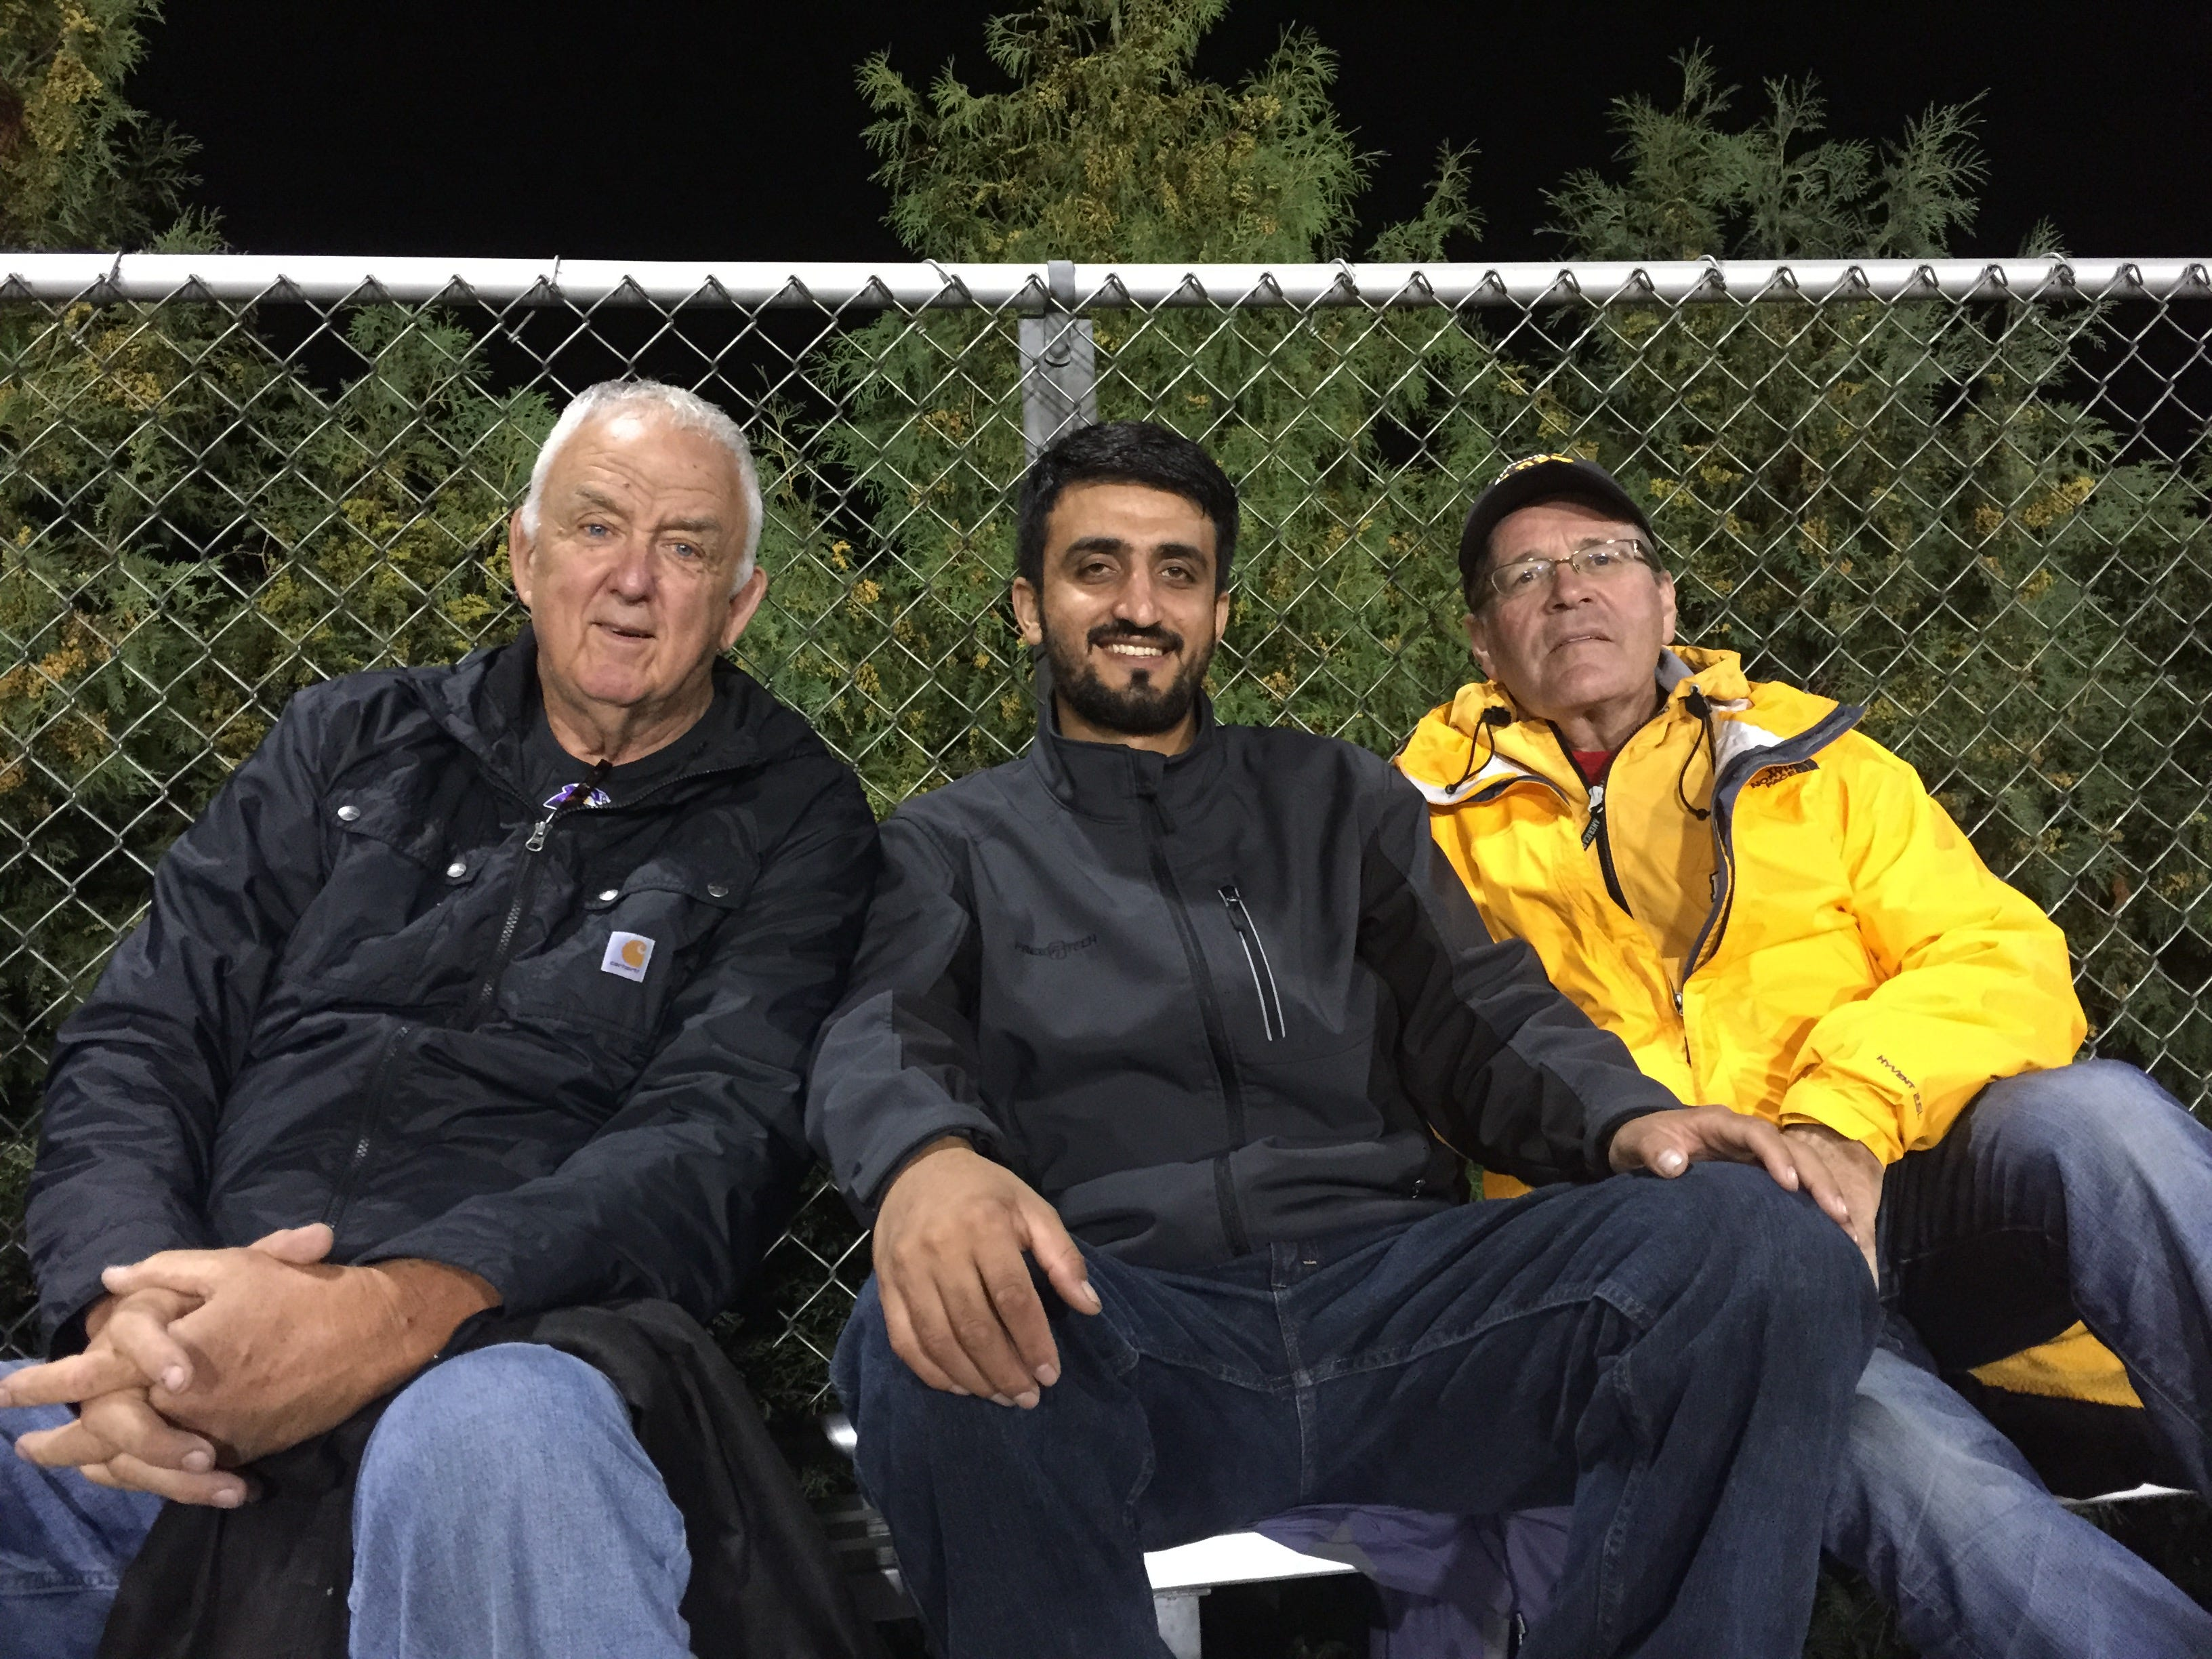 Zalmay Niazy, center, takes in a high school football game in Iowa Falls. Friend and confidant, Mike Ingebritson, sits to his left.